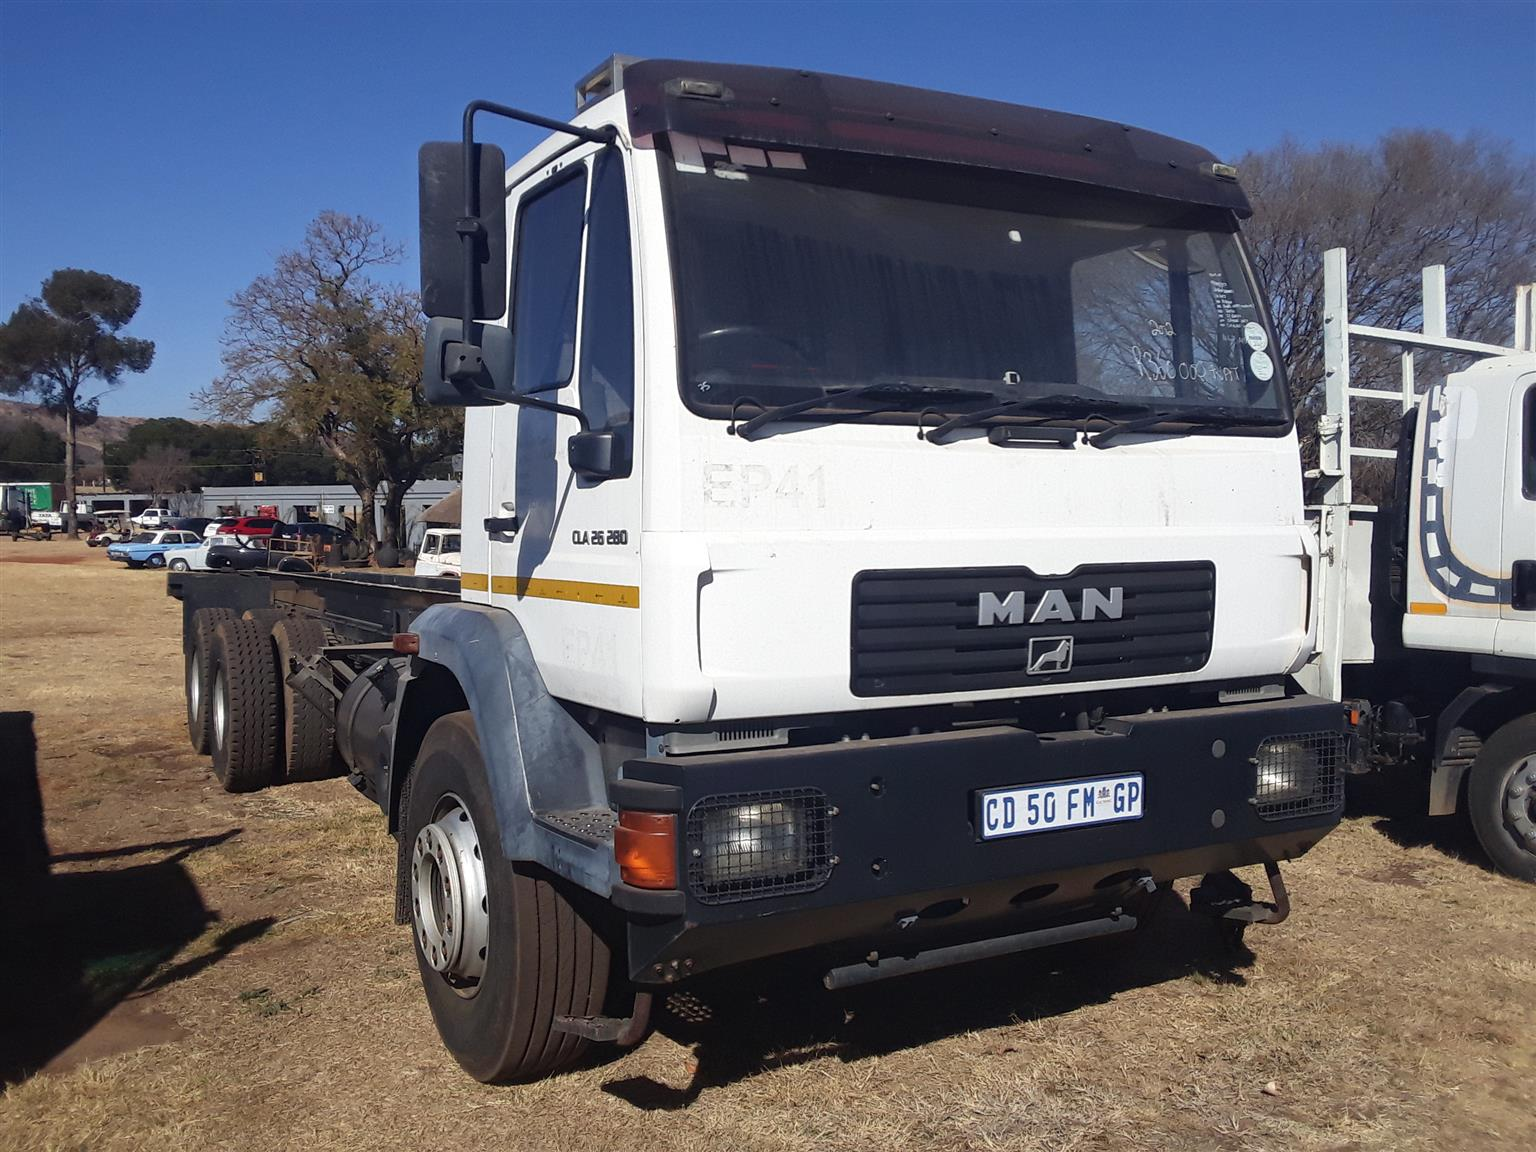 2012 MAN CLA26.280 chassis cab truck